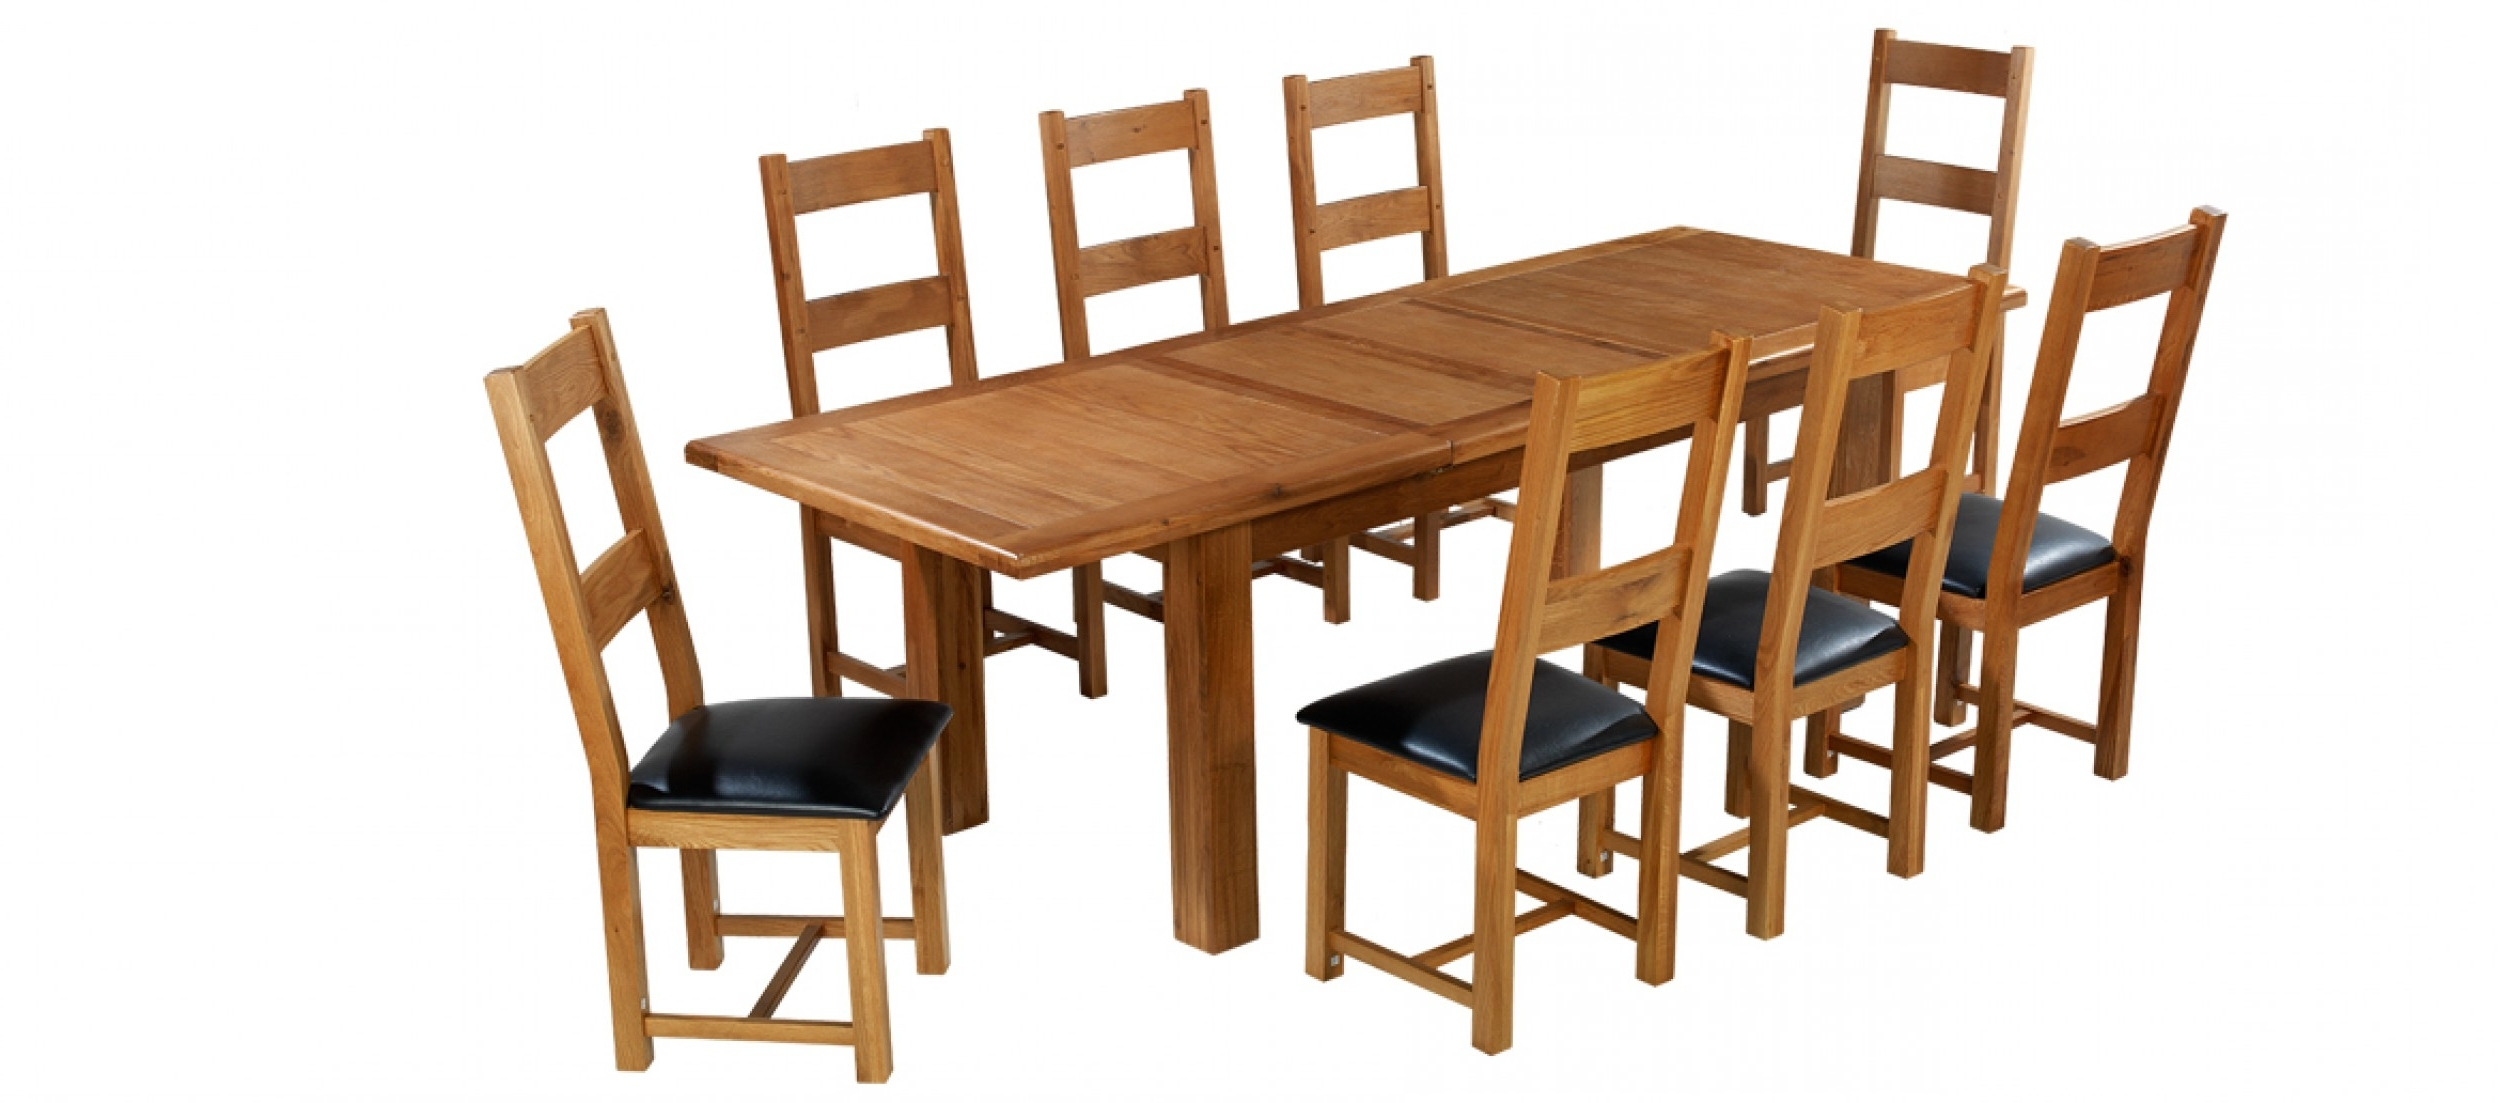 Quercus Regarding Extending Dining Table And Chairs (View 25 of 25)